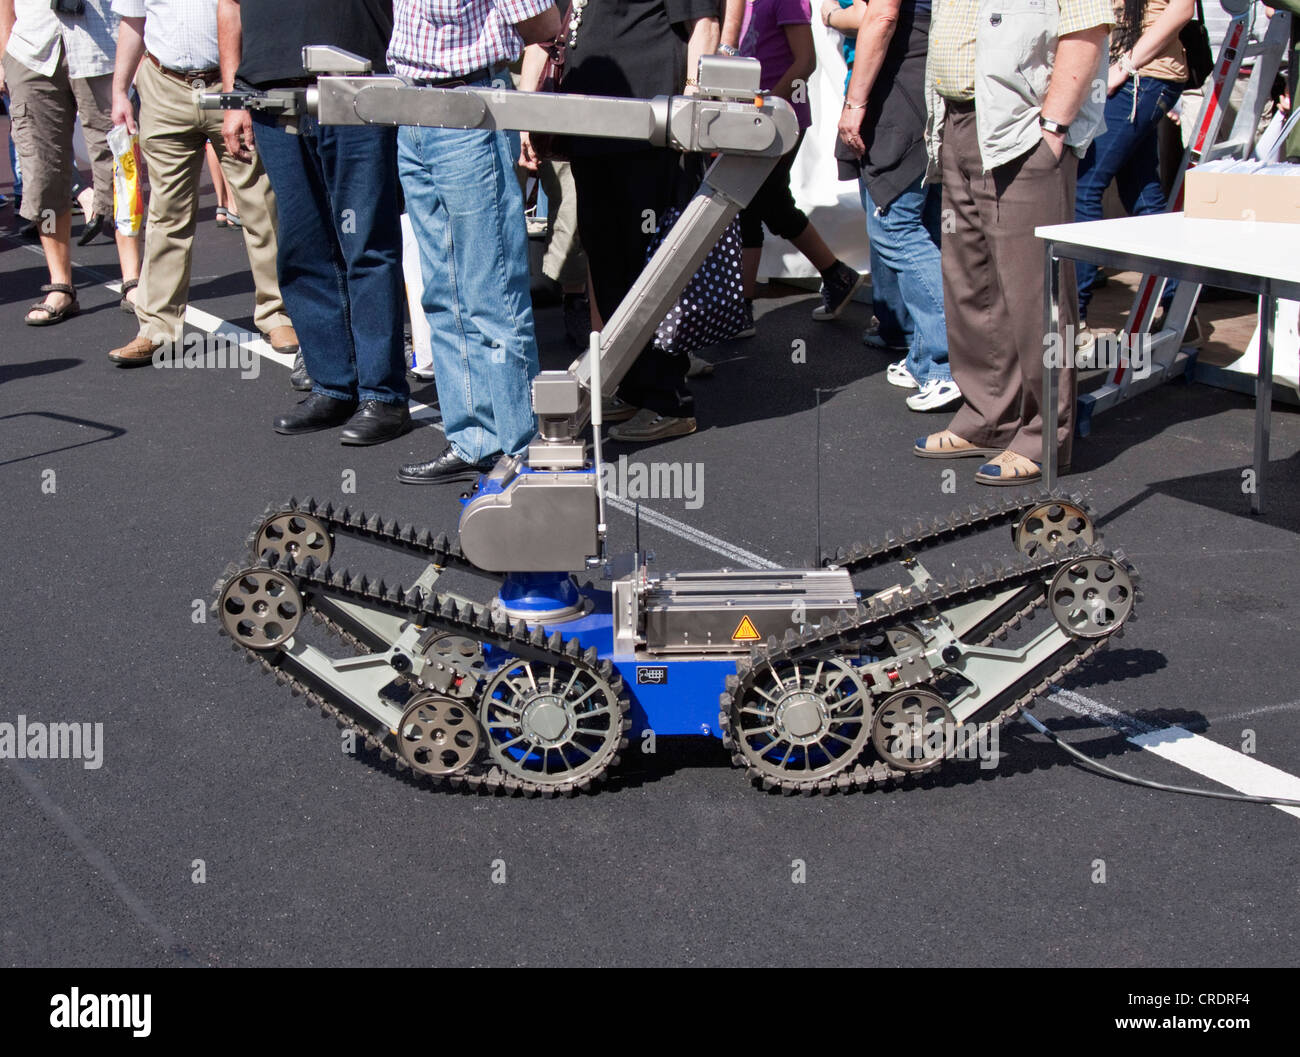 Police robot, bomb dismantling robot, remote controlled - Stock Image